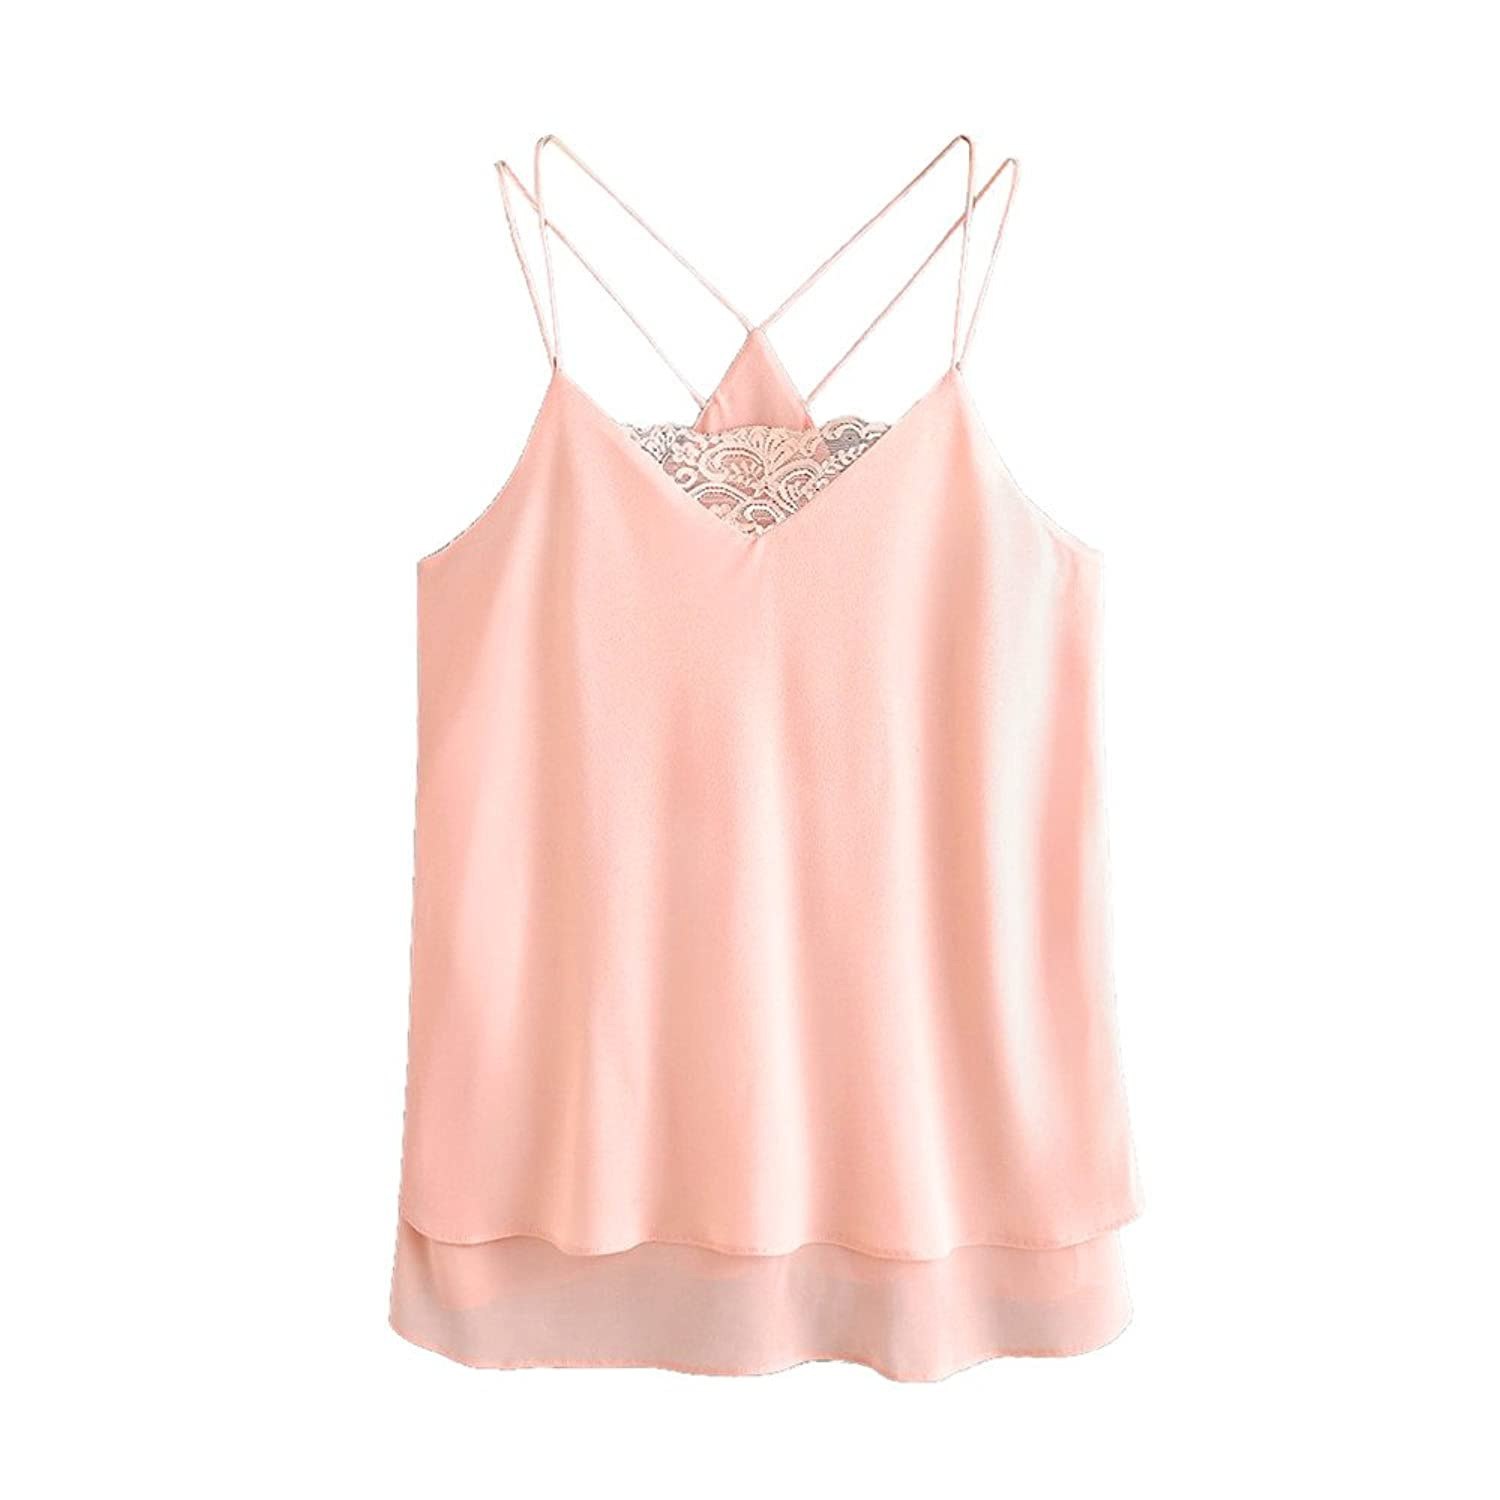 d74d1bf7561 ... generic chart) which is in the Product Description. 【Material】Cotton  blend. ???????????? Casual sleeveless tank tops feel soft and comfortable,  ...